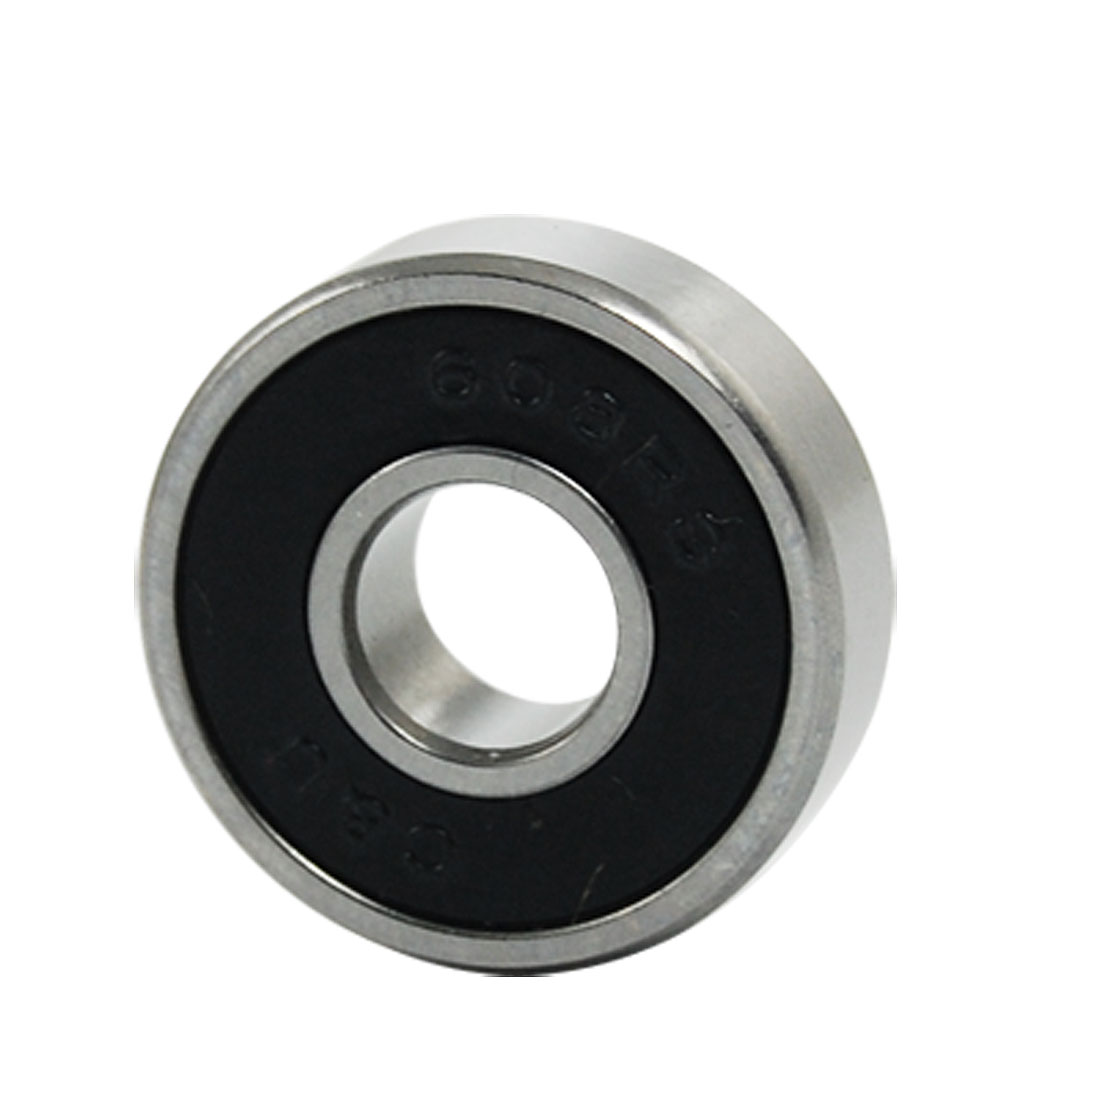 608RS 8mm x 22mm x 7mm Shield Deep Groove Ball Bearing